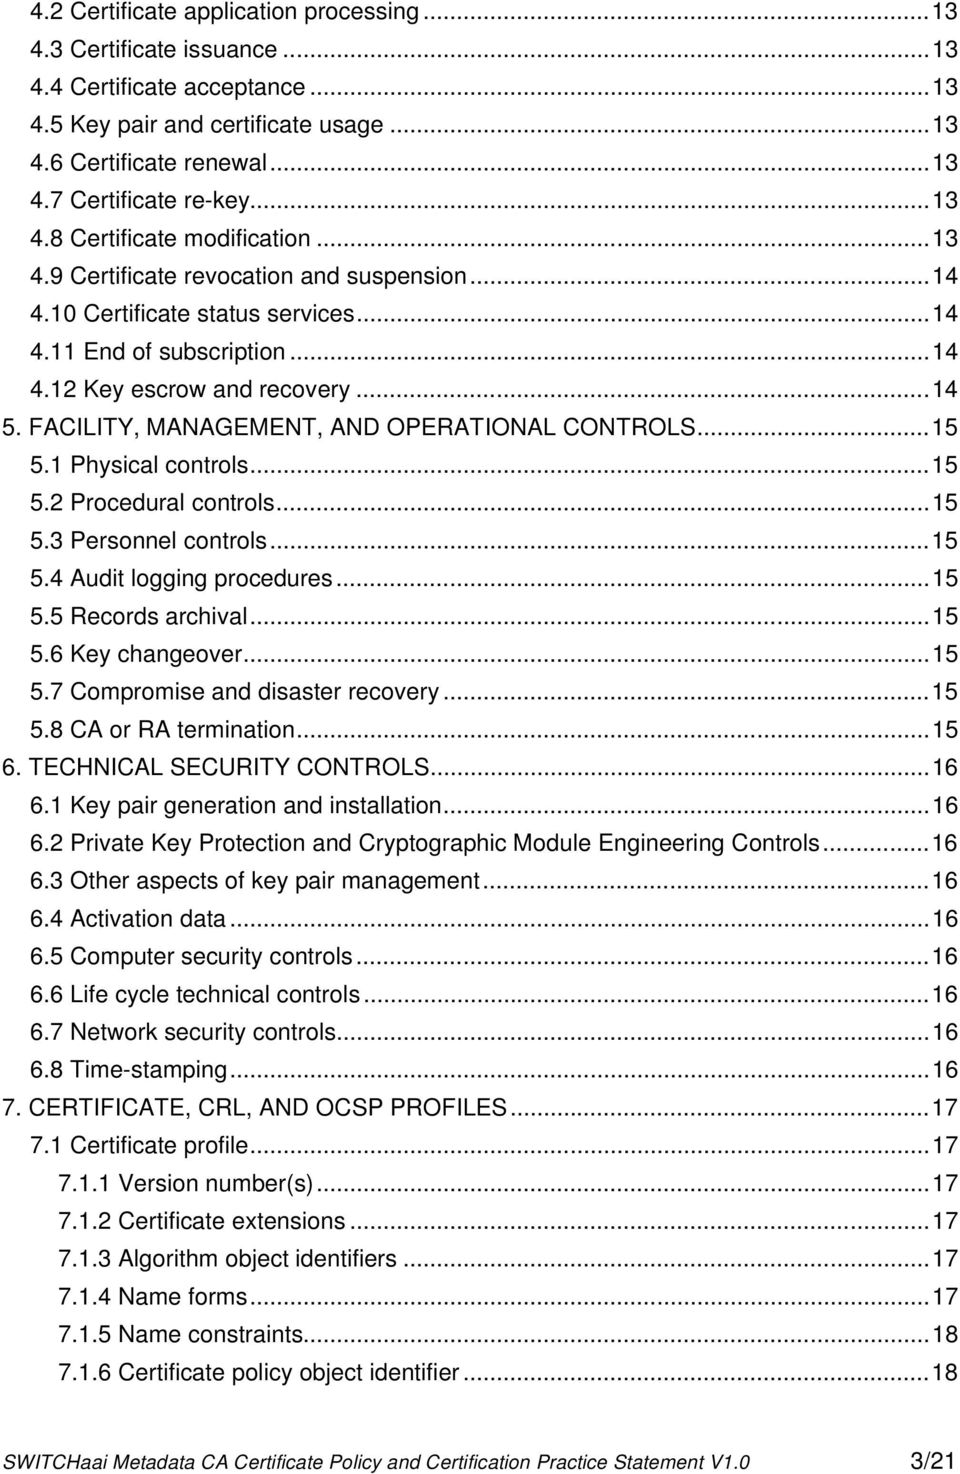 FACILITY, MANAGEMENT, AND OPERATIONAL CONTROLS...15 5.1 Physical controls...15 5.2 Procedural controls...15 5.3 Personnel controls...15 5.4 Audit logging procedures...15 5.5 Records archival...15 5.6 Key changeover.